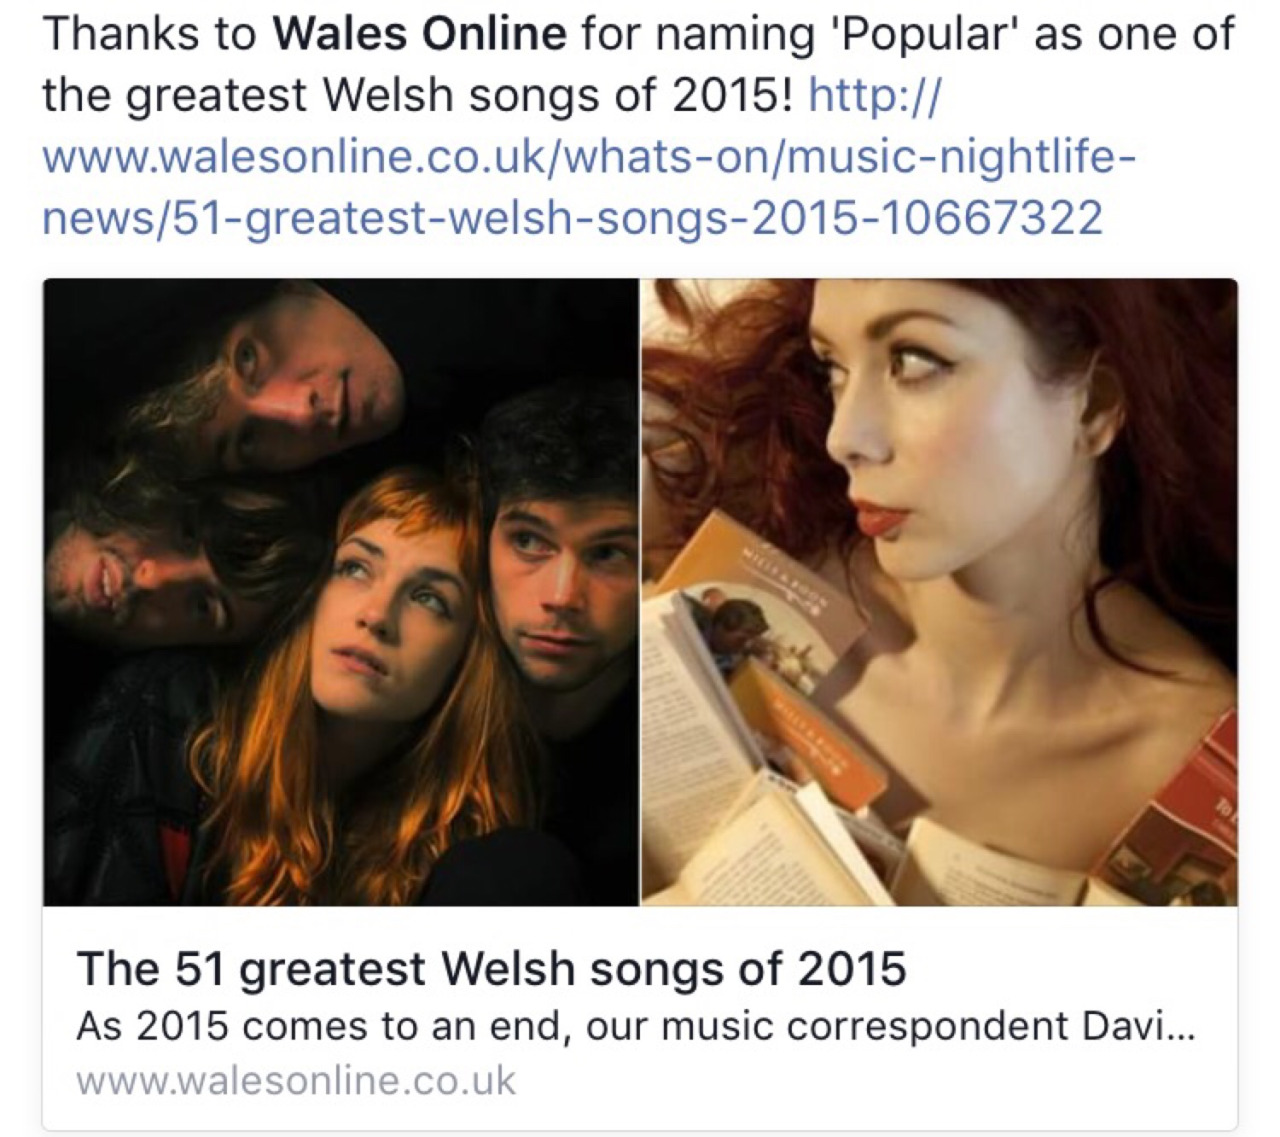 Thanks to Wales Online for naming 'Popular' as one of the greatest Welsh songs of 2015. Honoured to be included in such fine company X     http://www.walesonline.co.uk/whats-on/music-nightlife-news/51-greatest-welsh-songs-2015-10667322